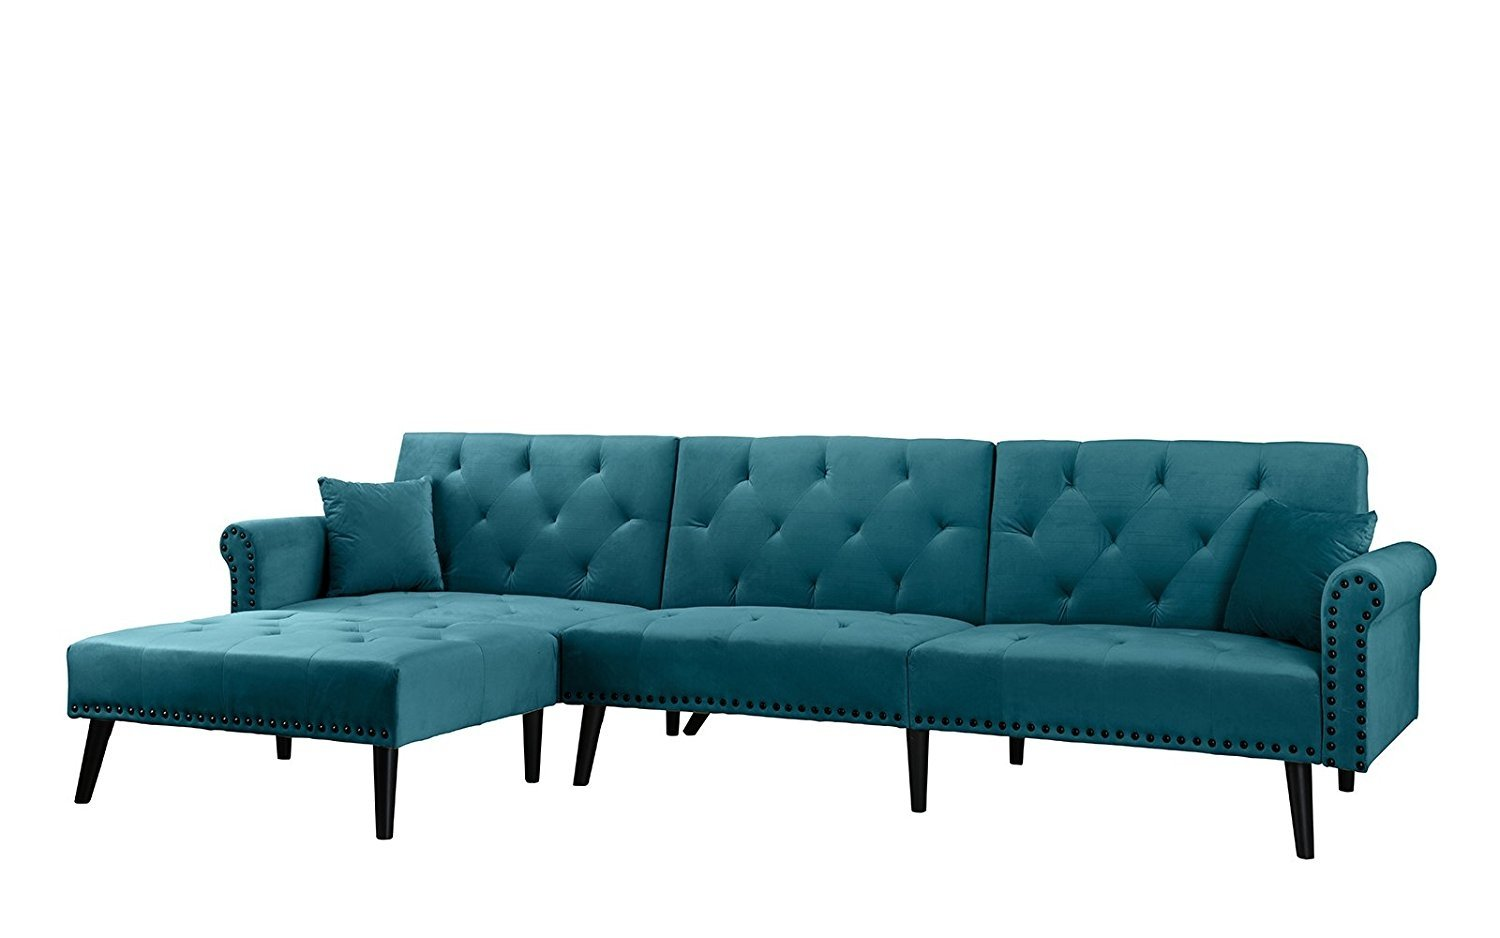 Details about Contemporary Modern Velvet Sleeper Futon Sofa, Mid Century L  Shape Couch, Teal